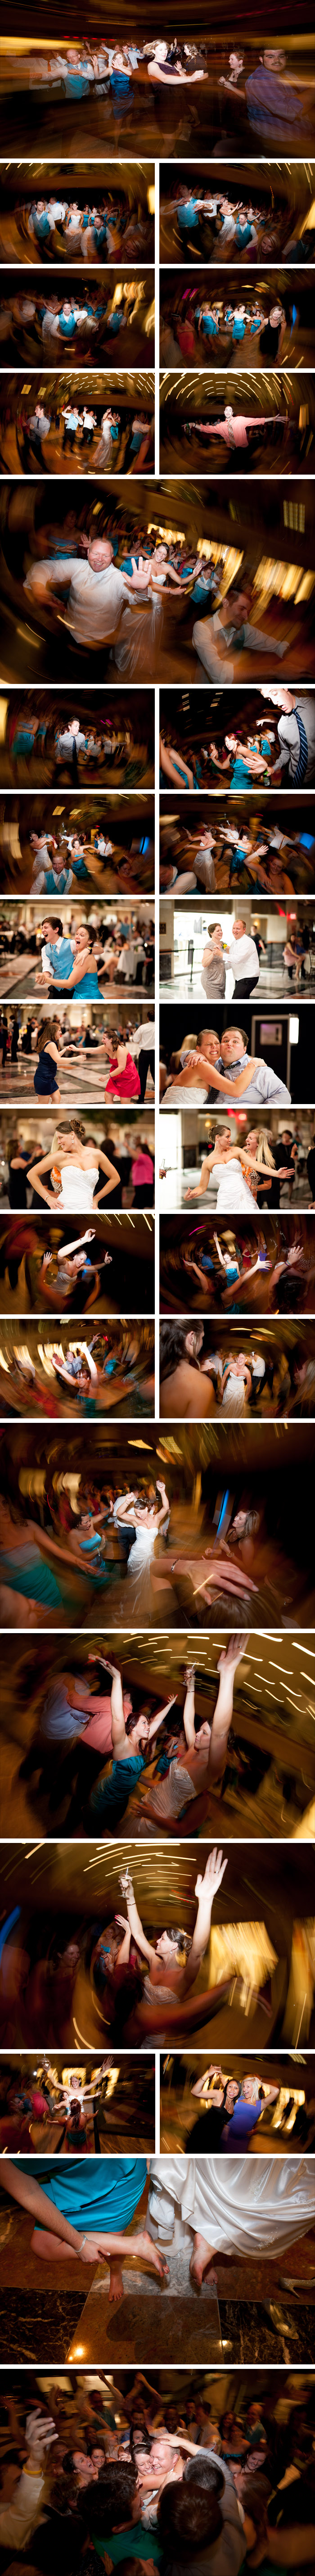 dancing3 Rebecca + Blair | Charlotte, NC Wedding